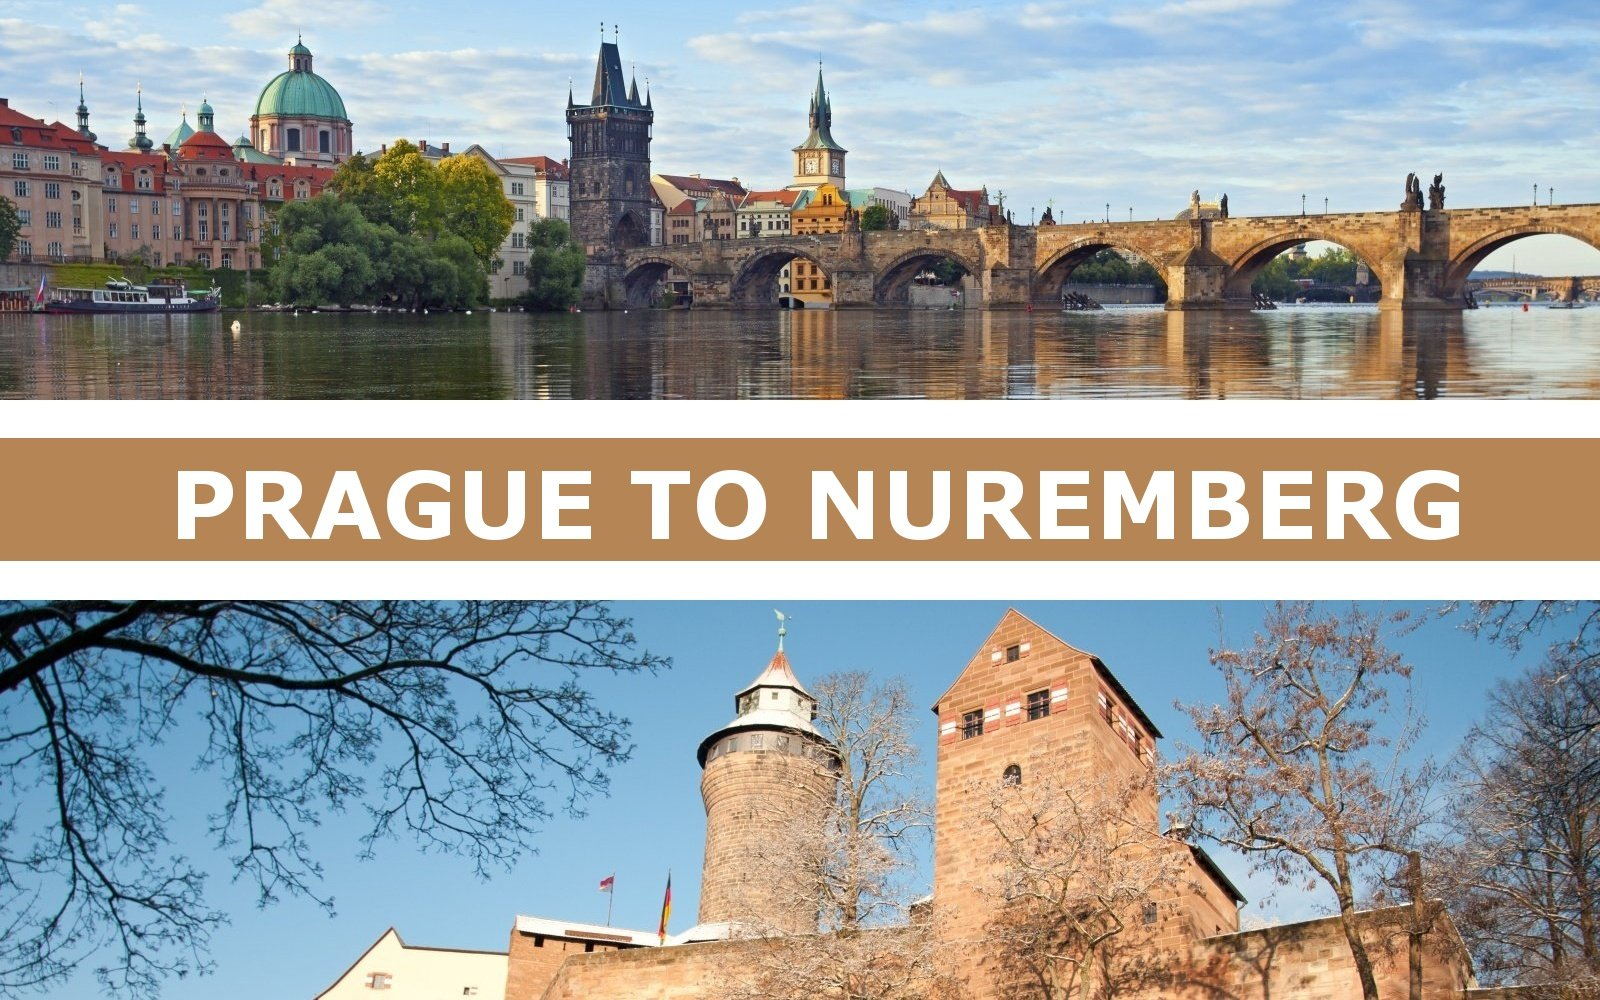 Transportation from Prague to Nuremberg